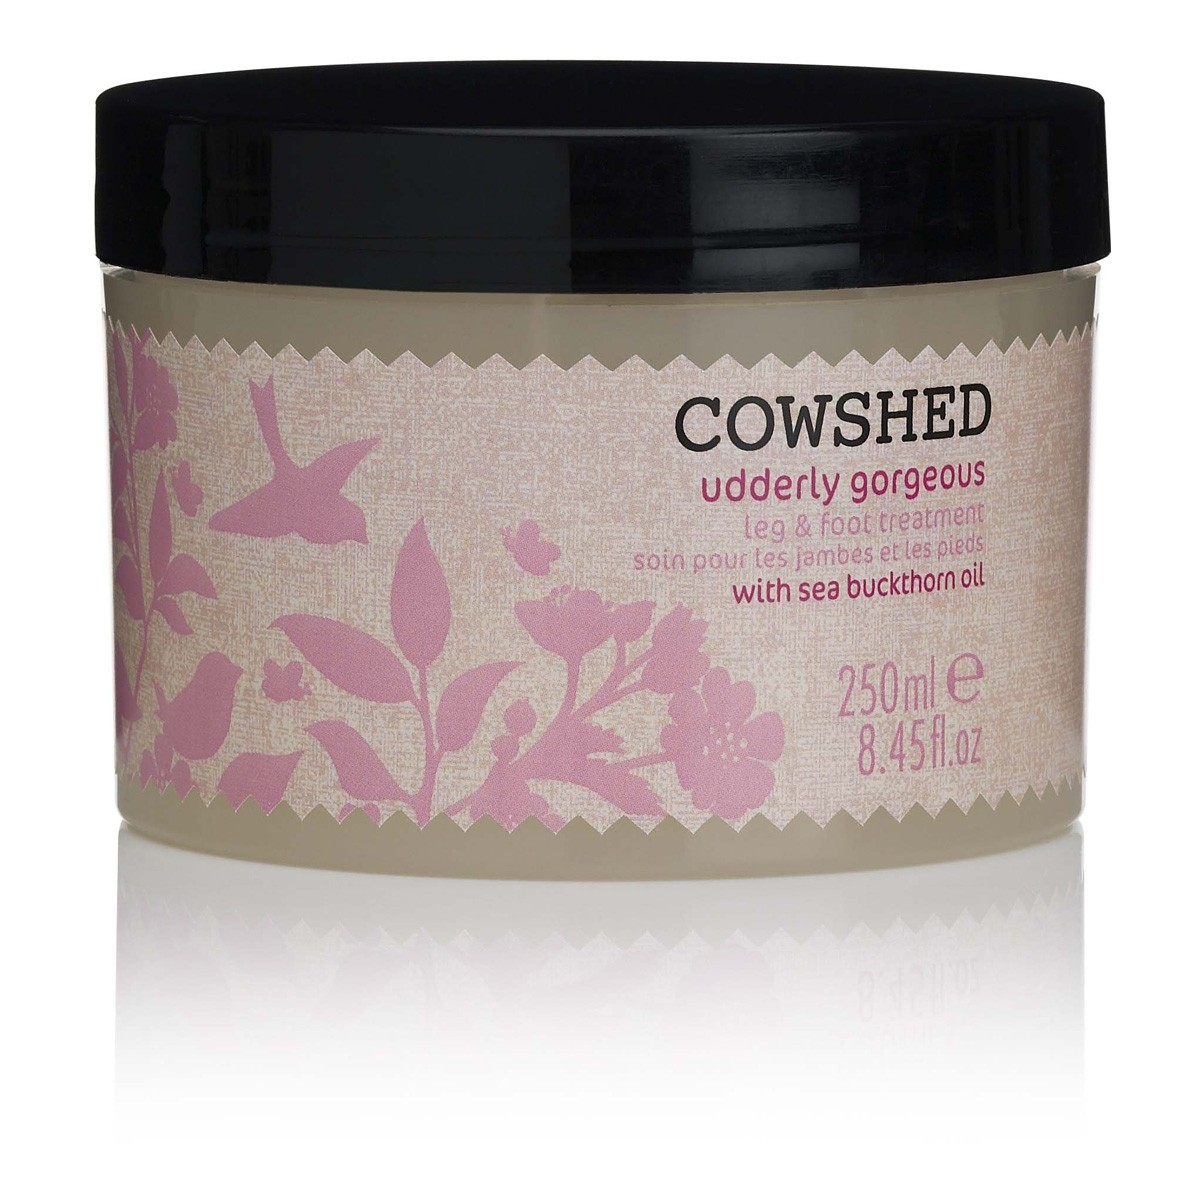 Cowshed Udderly Gorgeous Leg & Foot Treatment